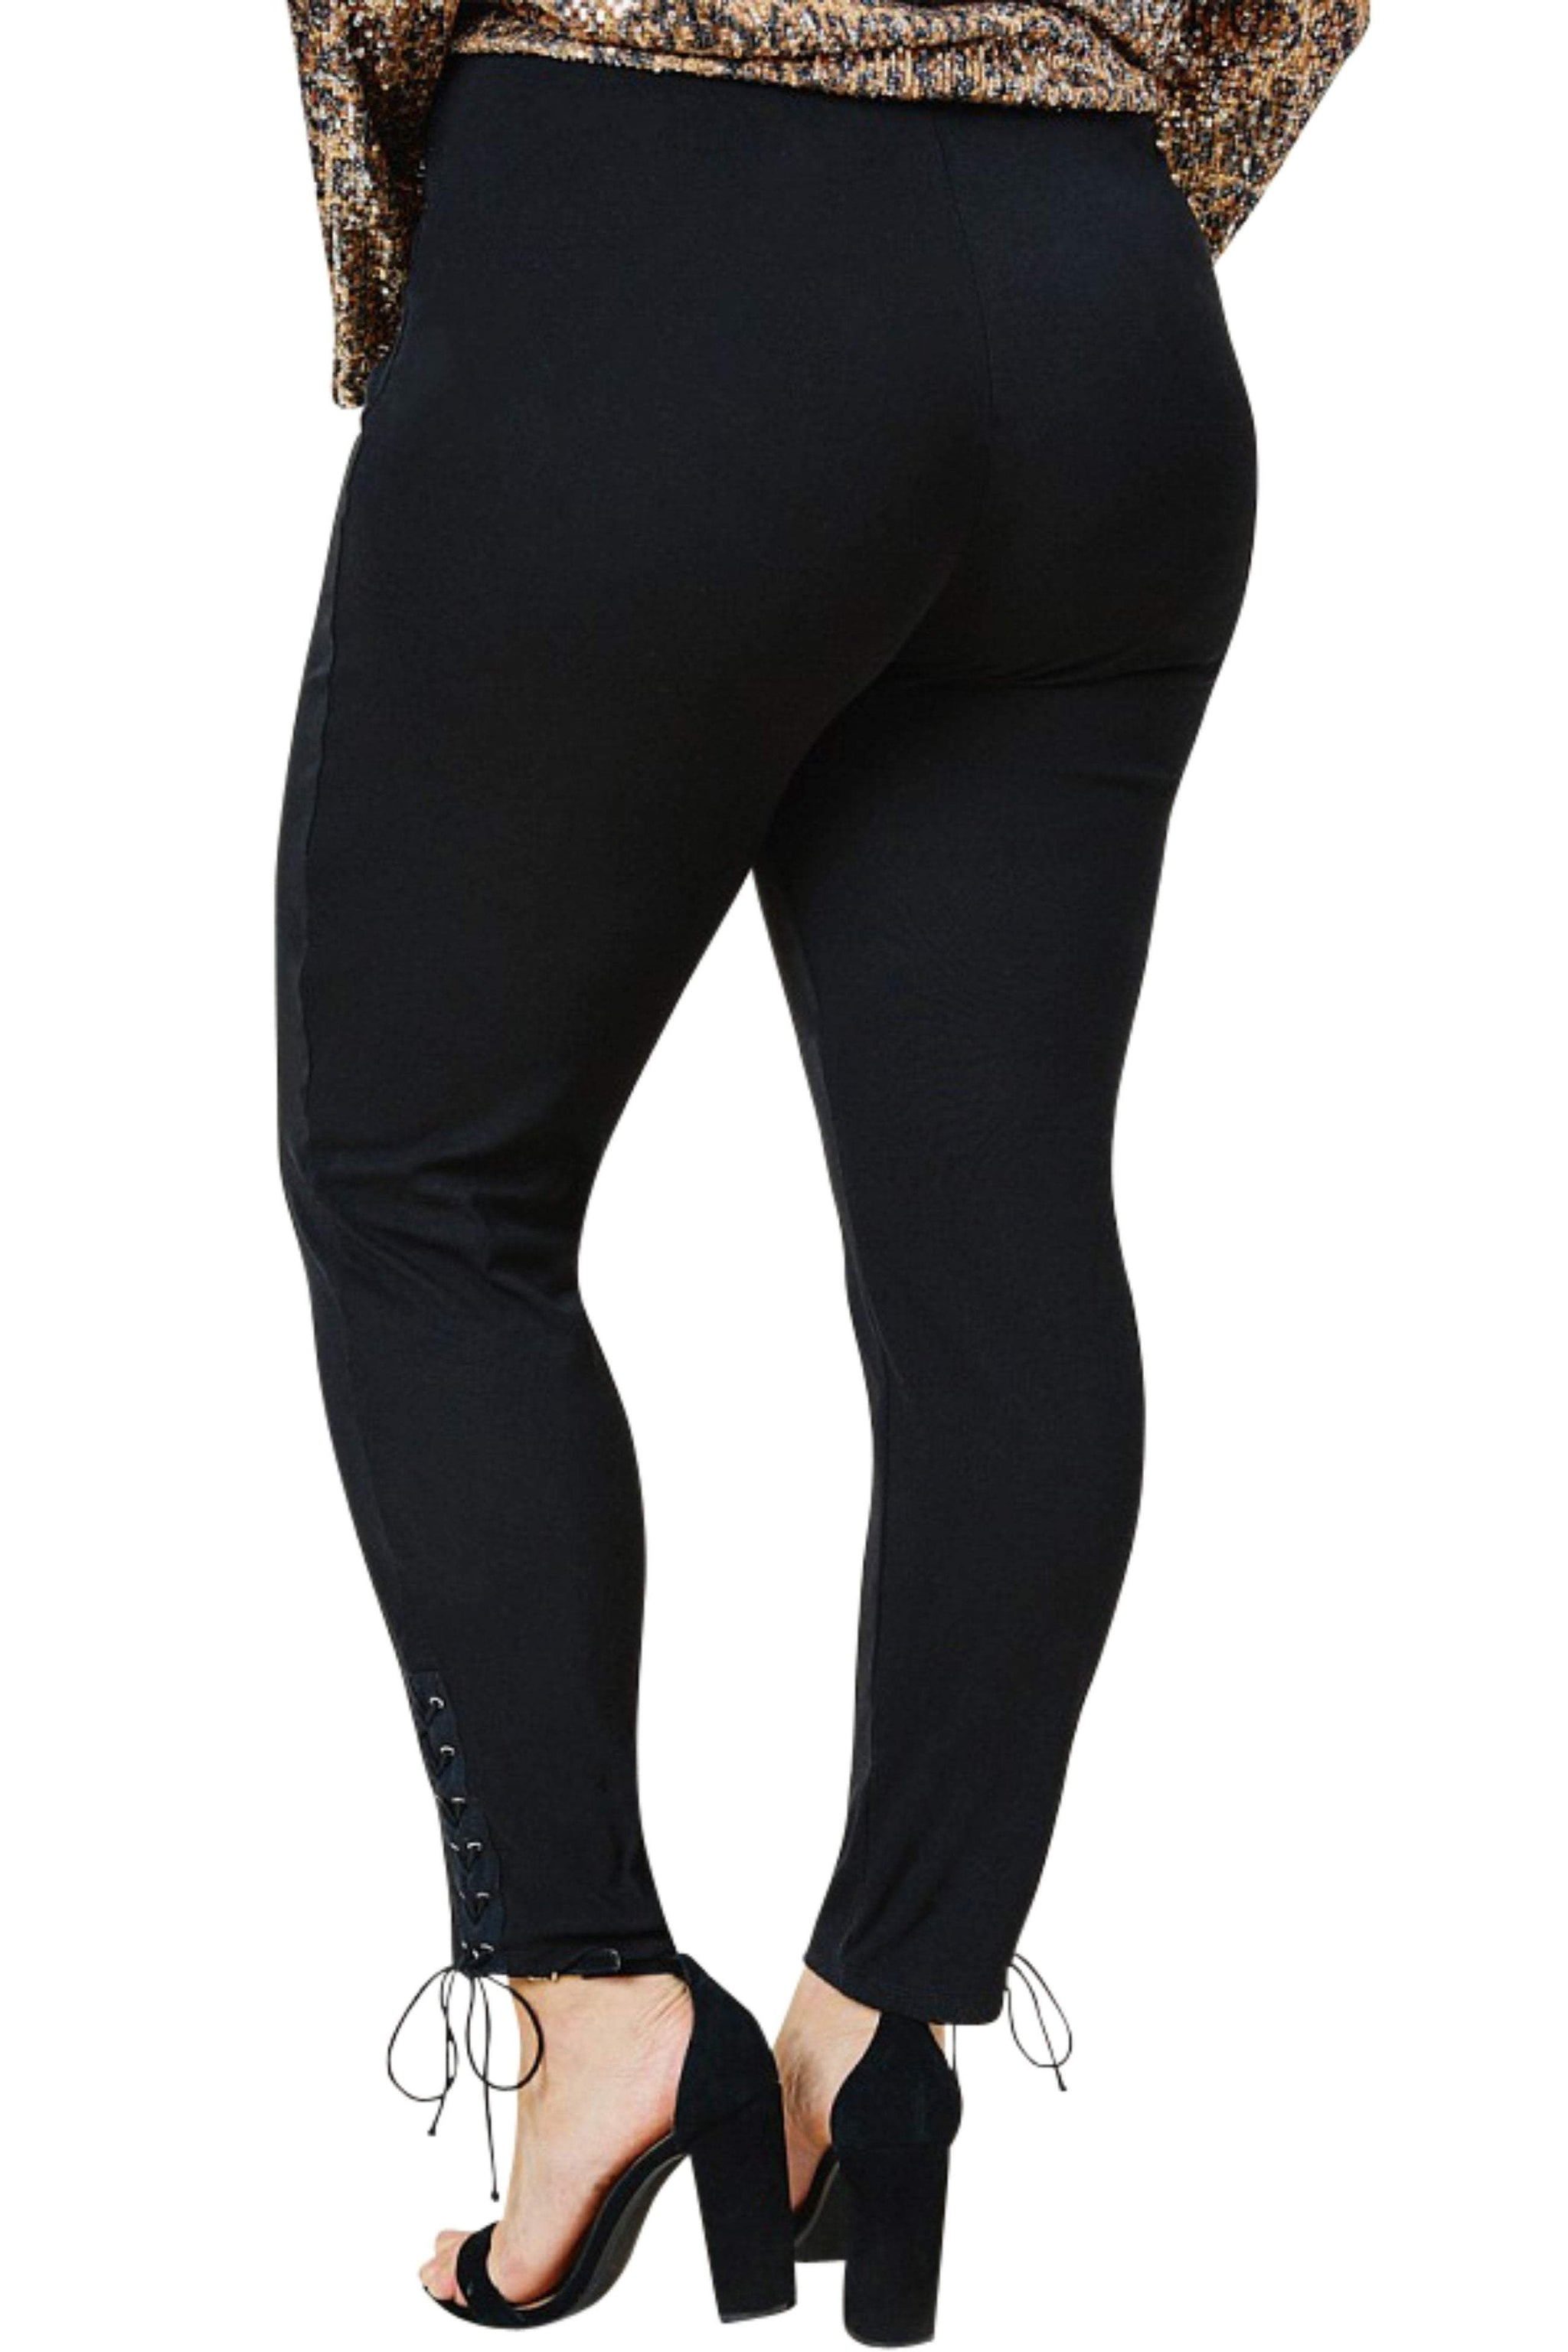 plus size Pants aa. Brenna Leggings